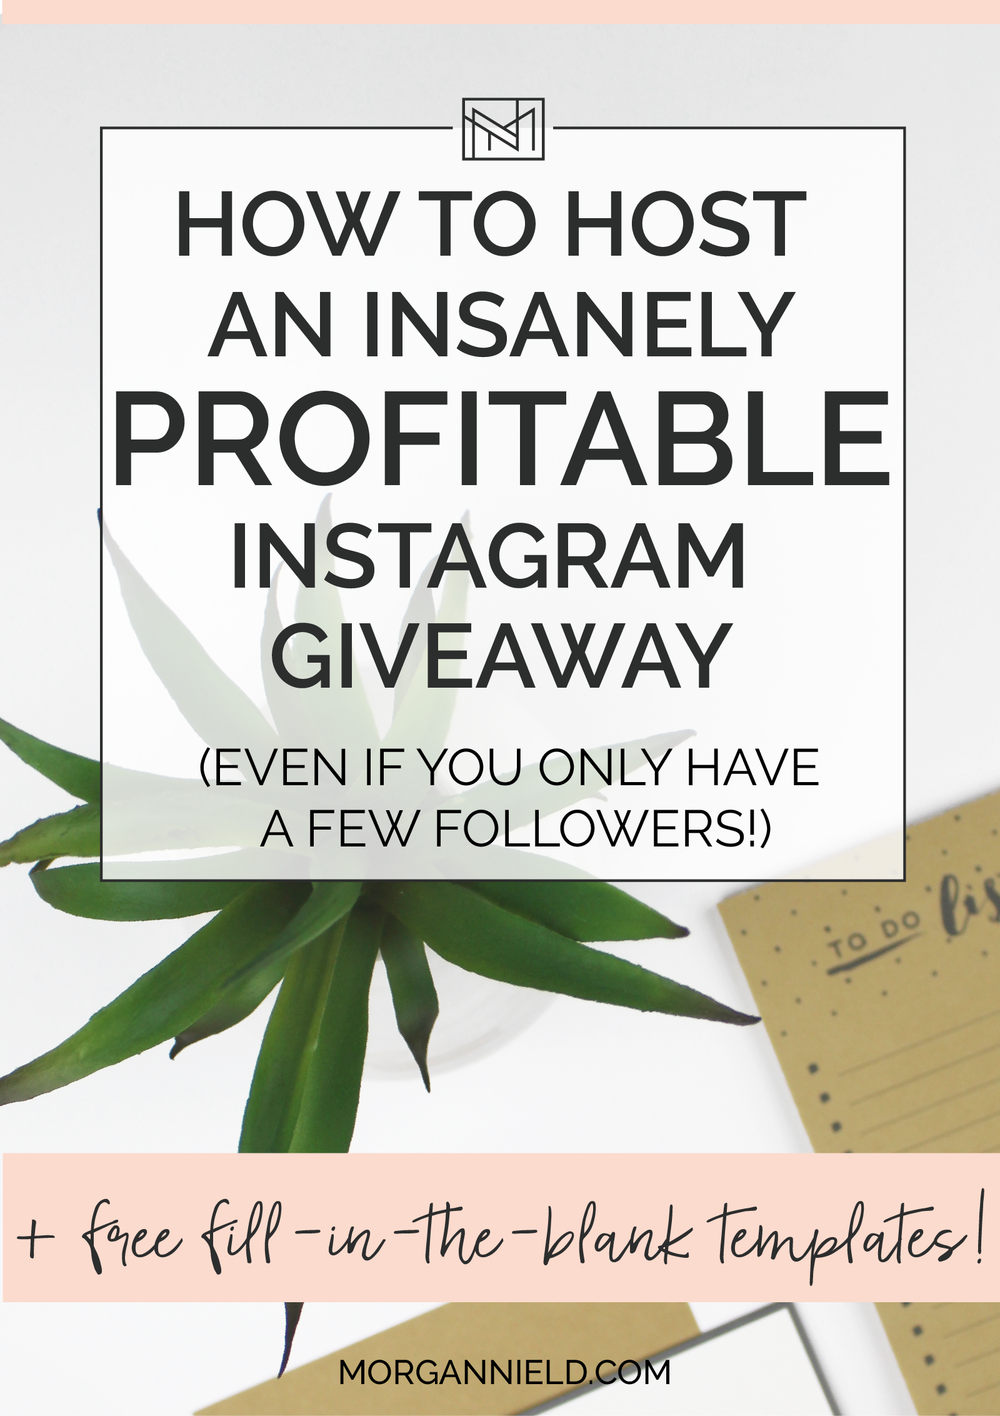 If you're looking to jump-start your Instagram followers by a few hundred (at least!), then it's worth looking into hosting a giveaway promotion on Instagram. The best news? You don't need to have hundreds of followers to host an EXTREMELY PROFITABLE Instagram giveaway-- I promise! Click through to learn my top tips for making the most $$$ during your giveaway >>